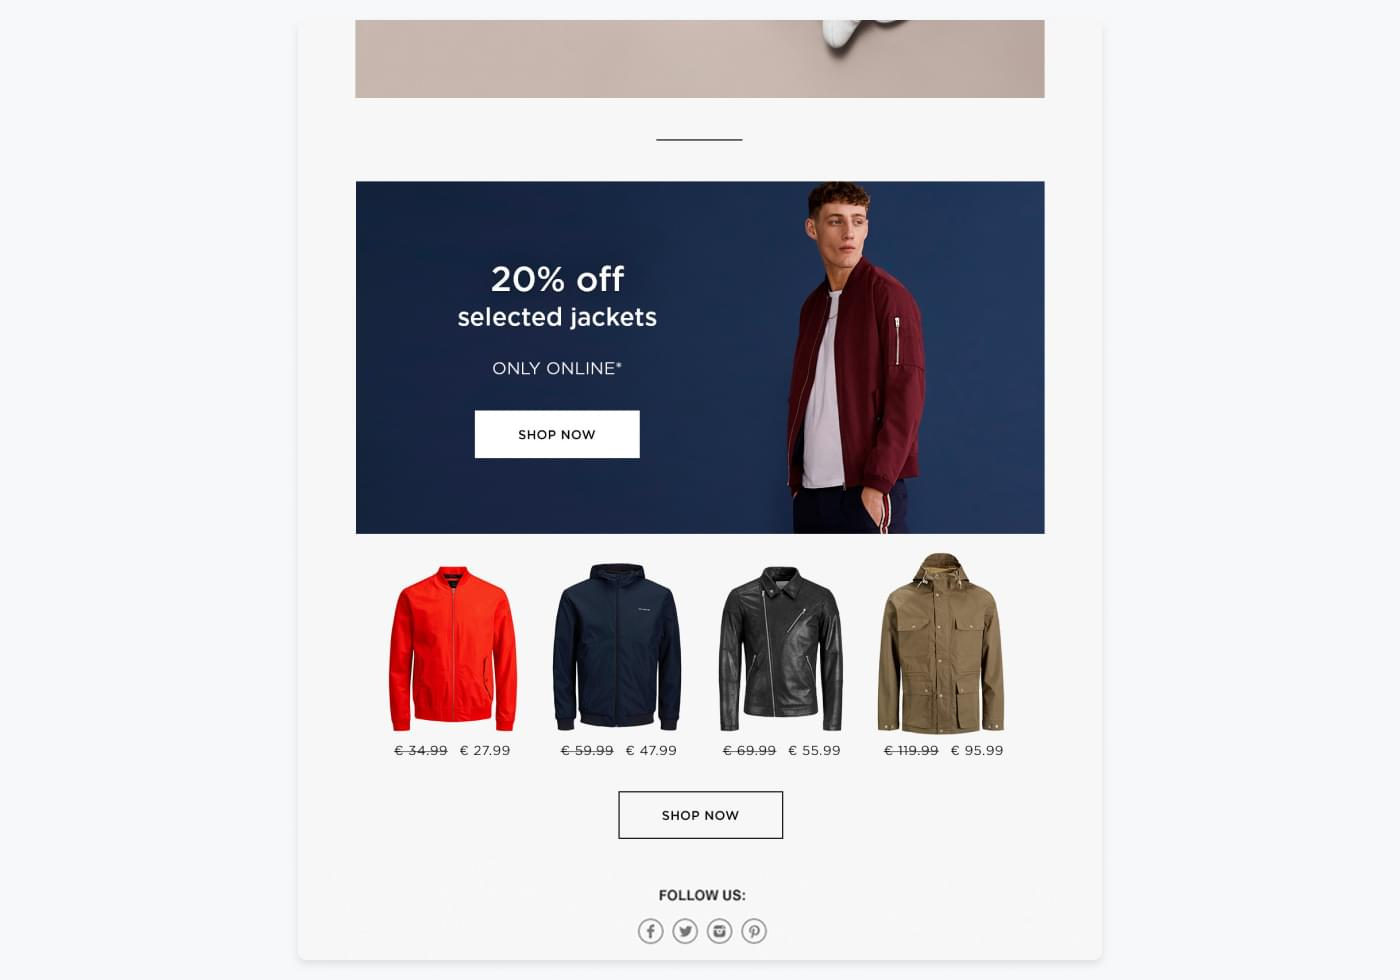 snippet from JACK & JONES' newsletter with 20% off jackets